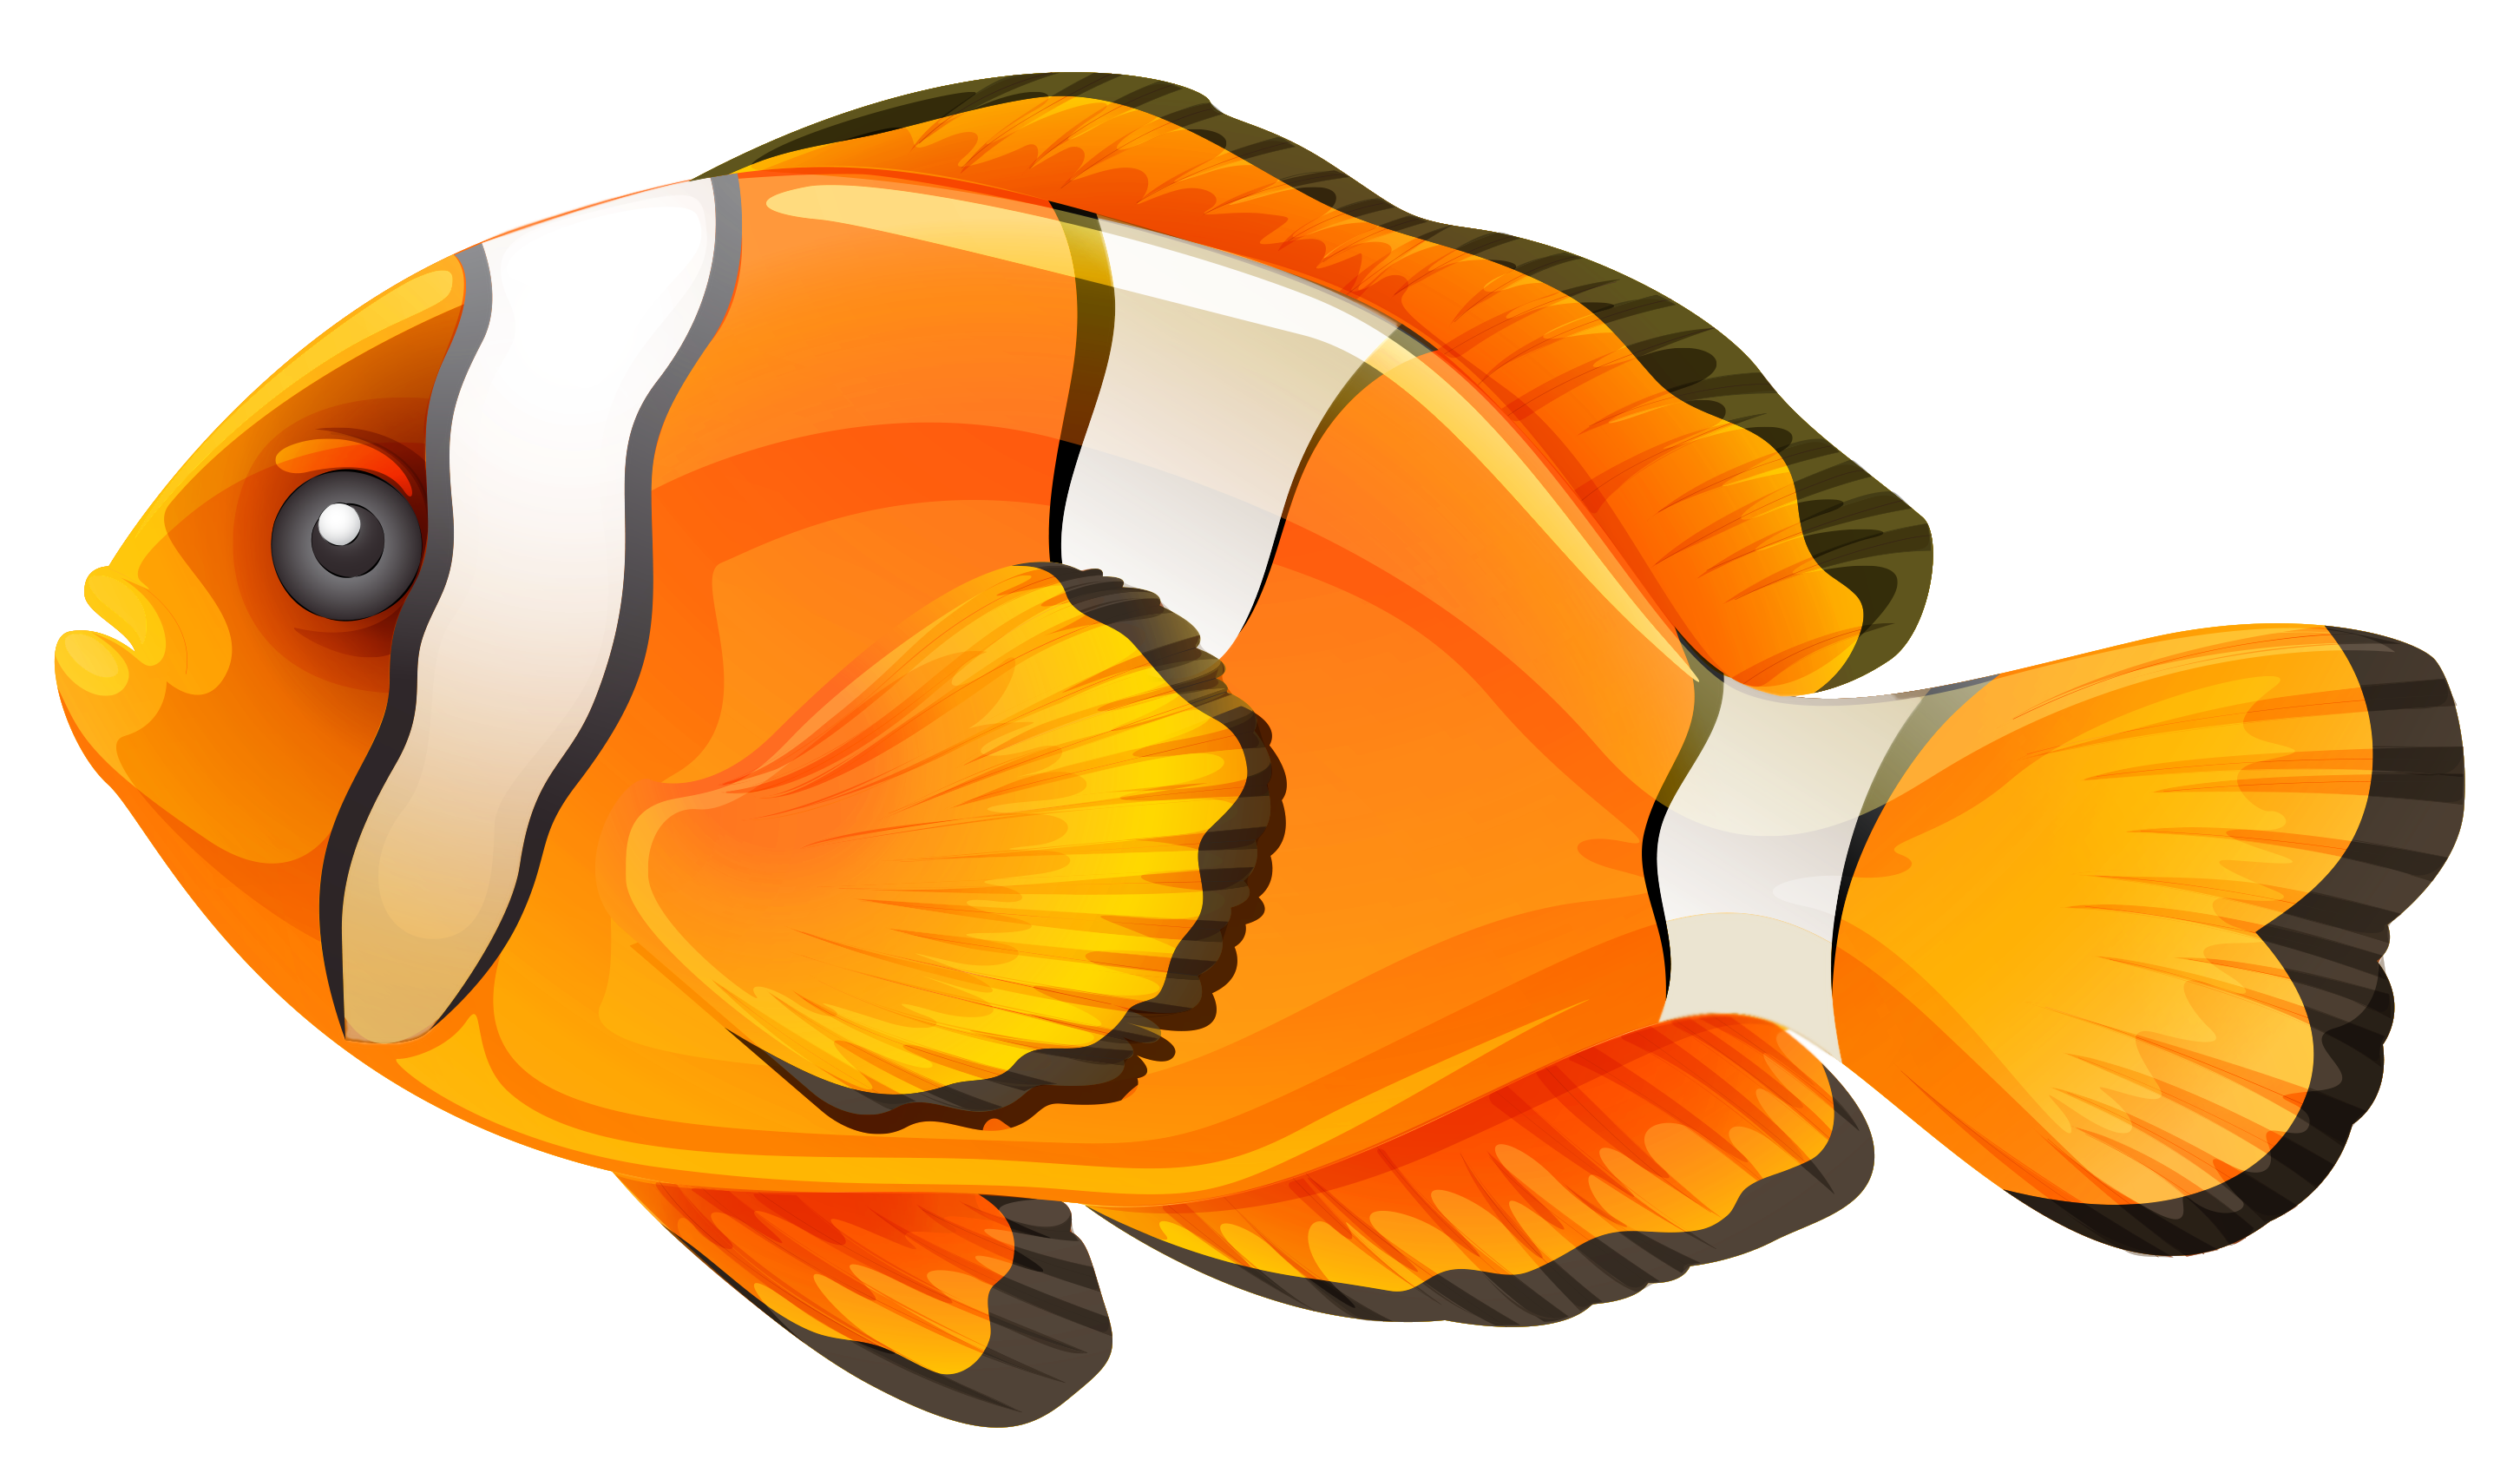 Fish png image free. Dory clipart clear background